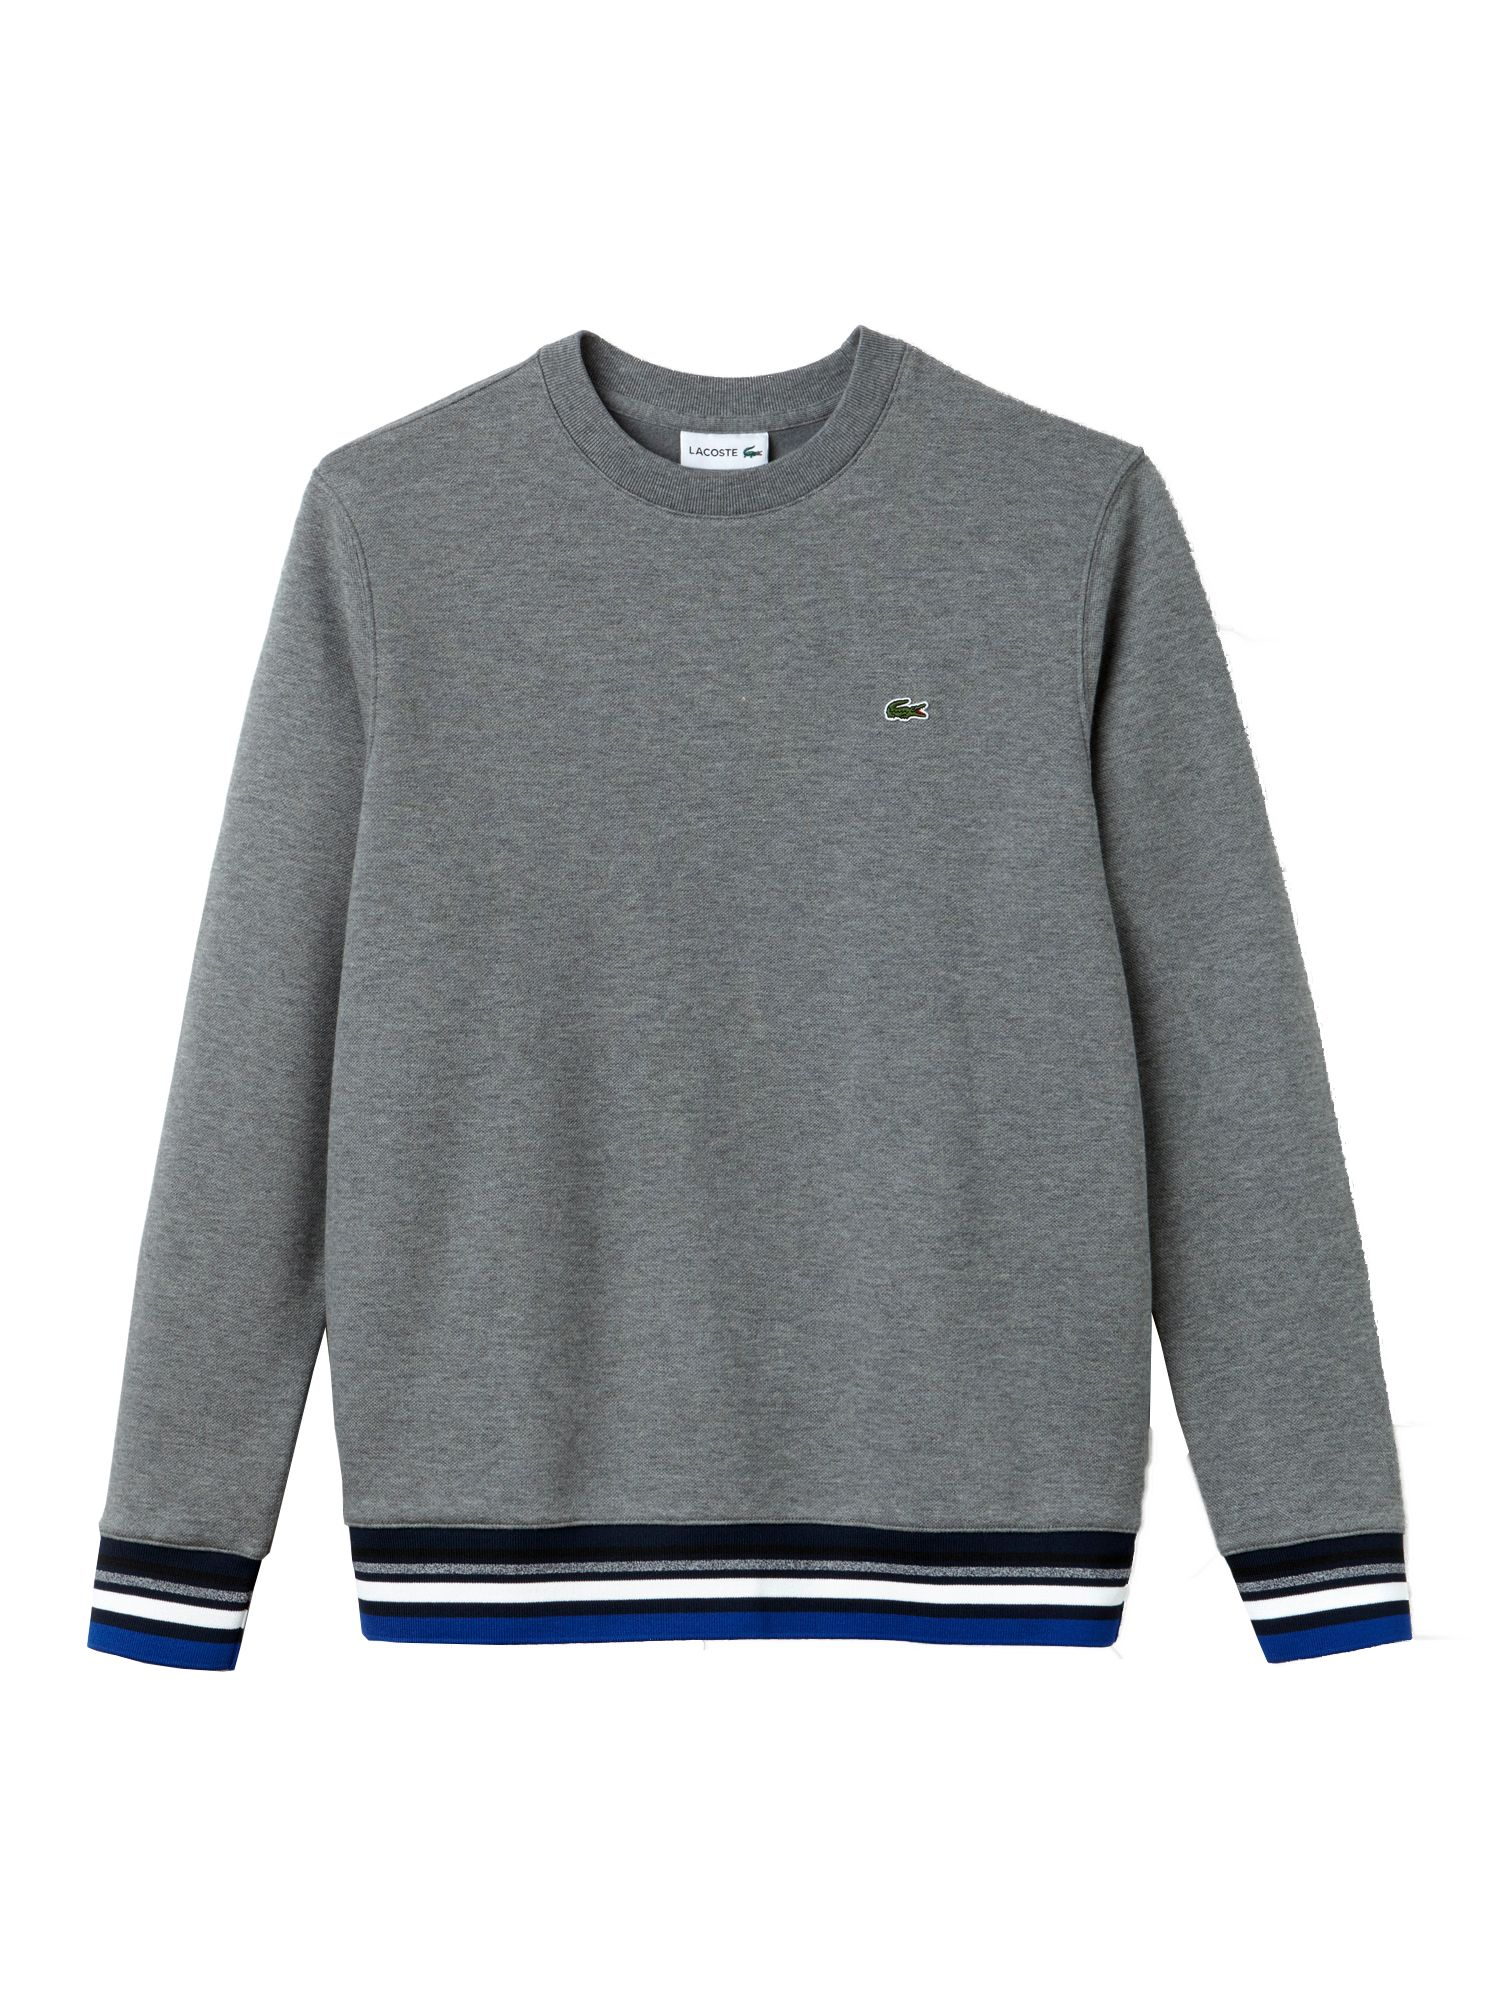 Men's Lacoste Contrast Detail Sweatshirt, Galaxite Chine